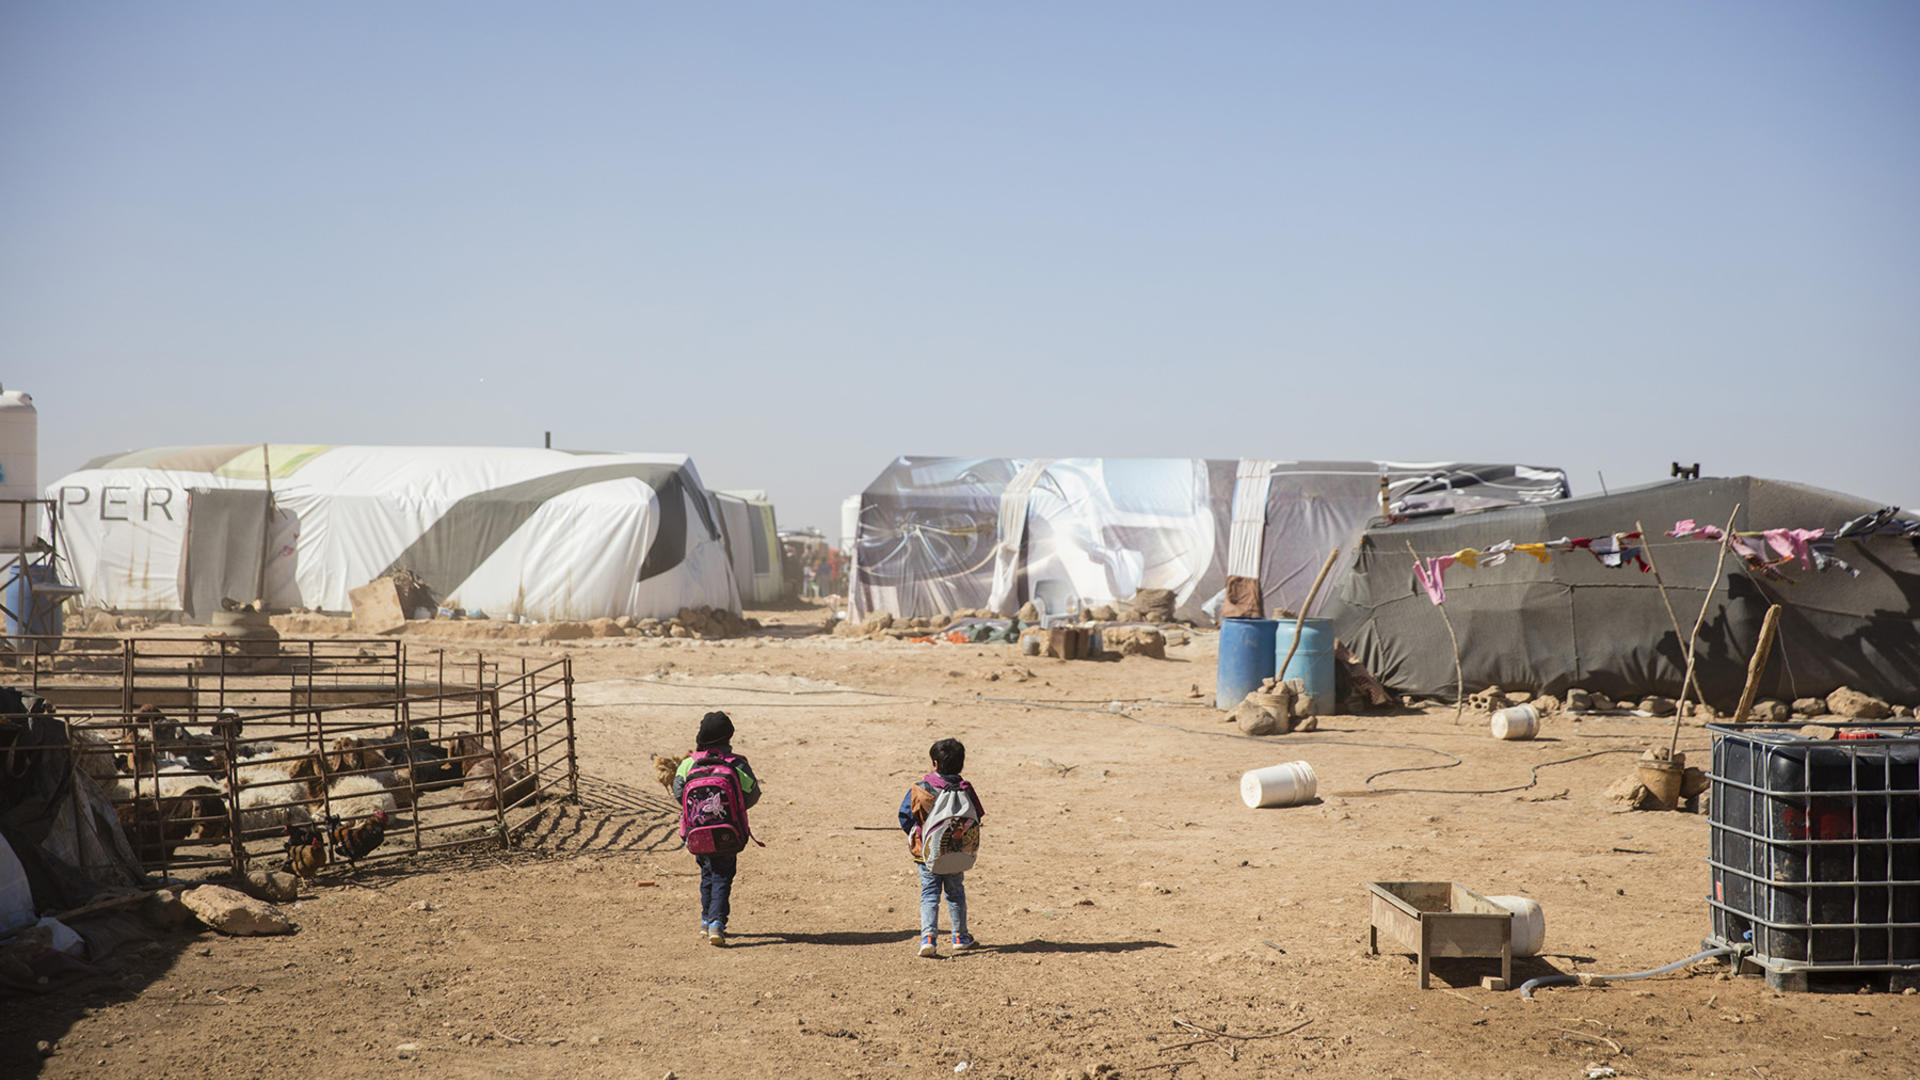 Syrian children walk through rows of tents in a refugee camp in Jordan